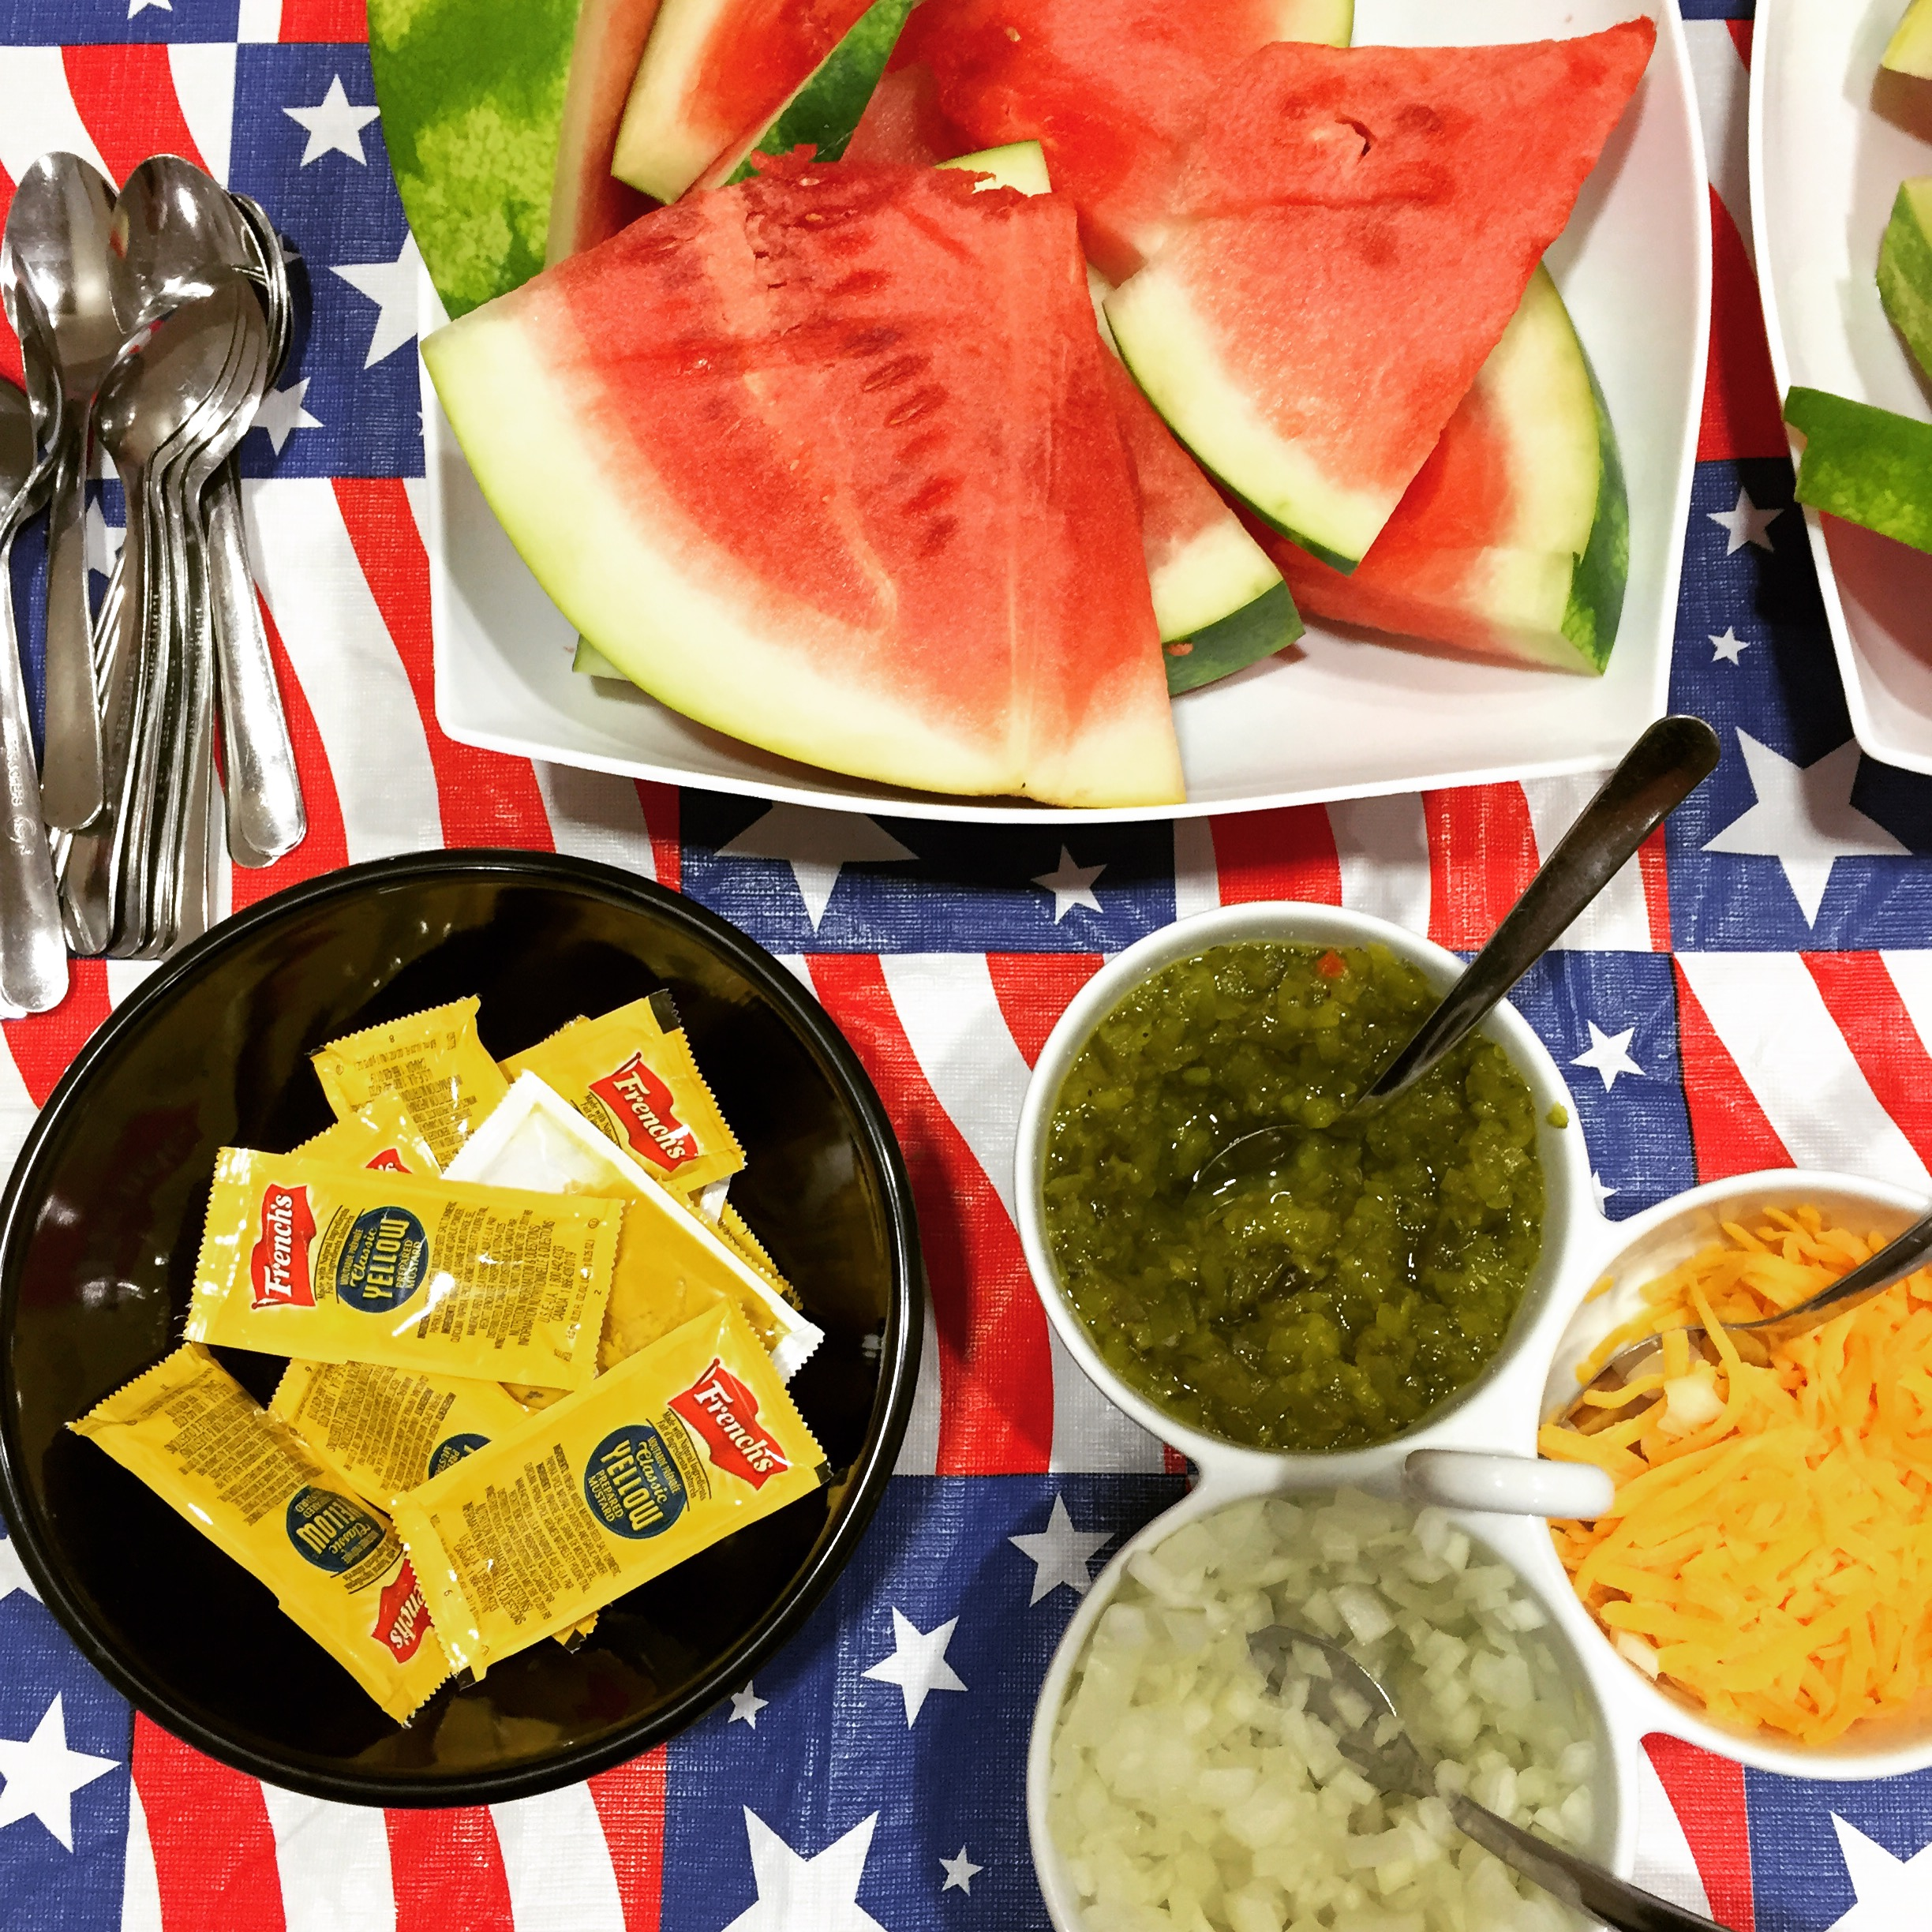 This is a picture from our 4th of July challenge meal at The Renfrew Center